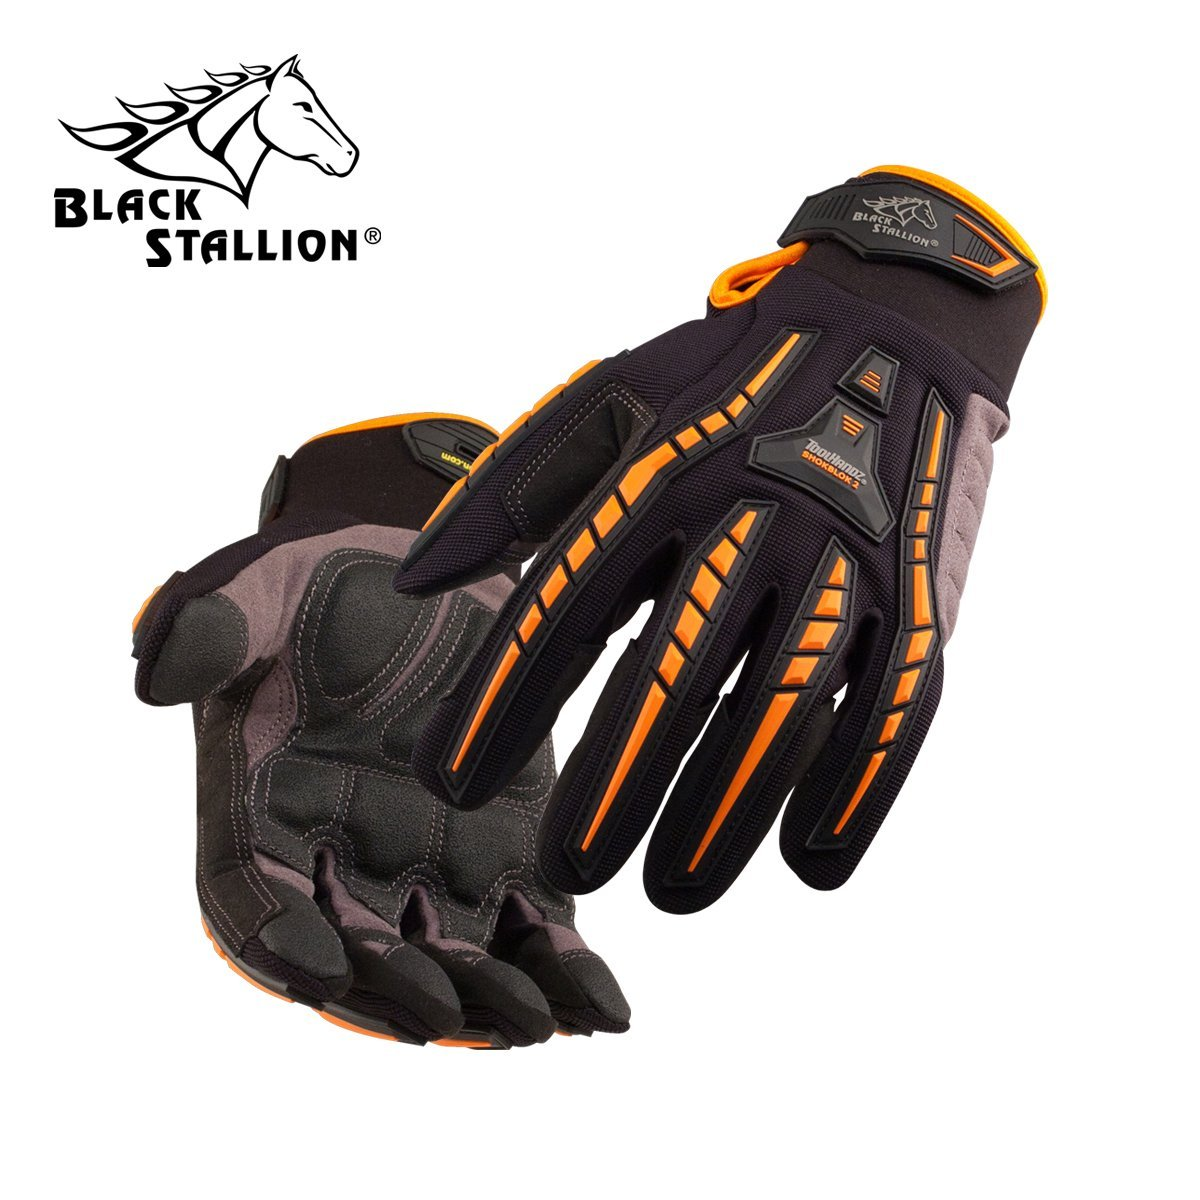 REVCO BLACK STALLION - GX100 TOOLHANDZ SYNTHETIC LEATHER MECHANIC'S GLOVES - SIZE: LARGE - CASE OF: 120 PAIR